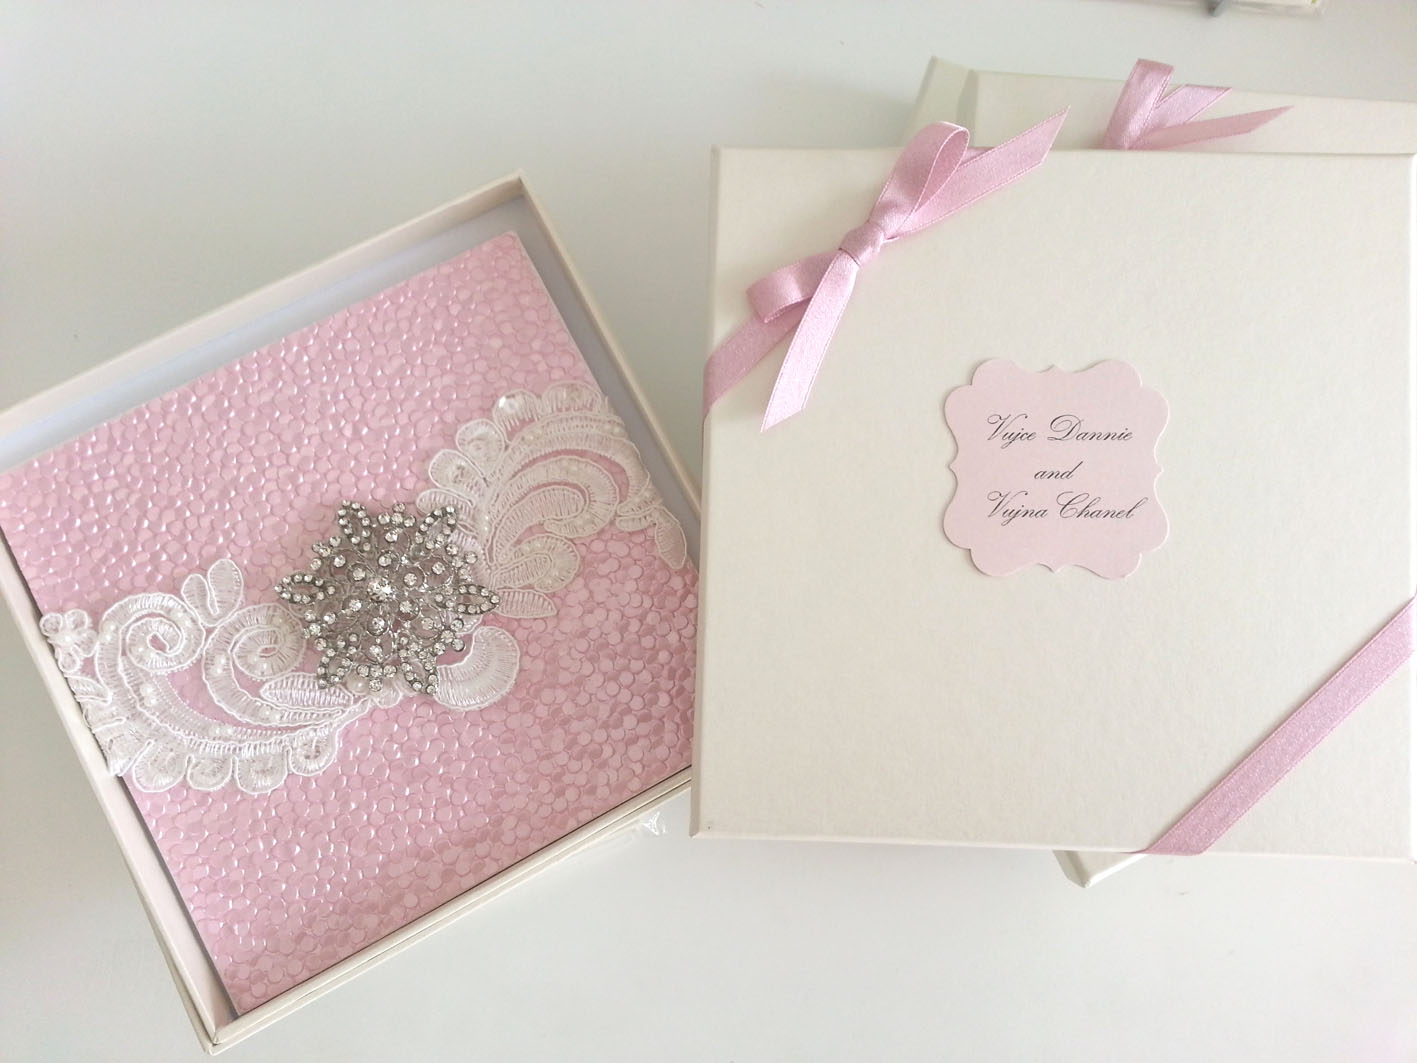 Christening girl hardcover invitations with dimantes clutch sydney.jpg